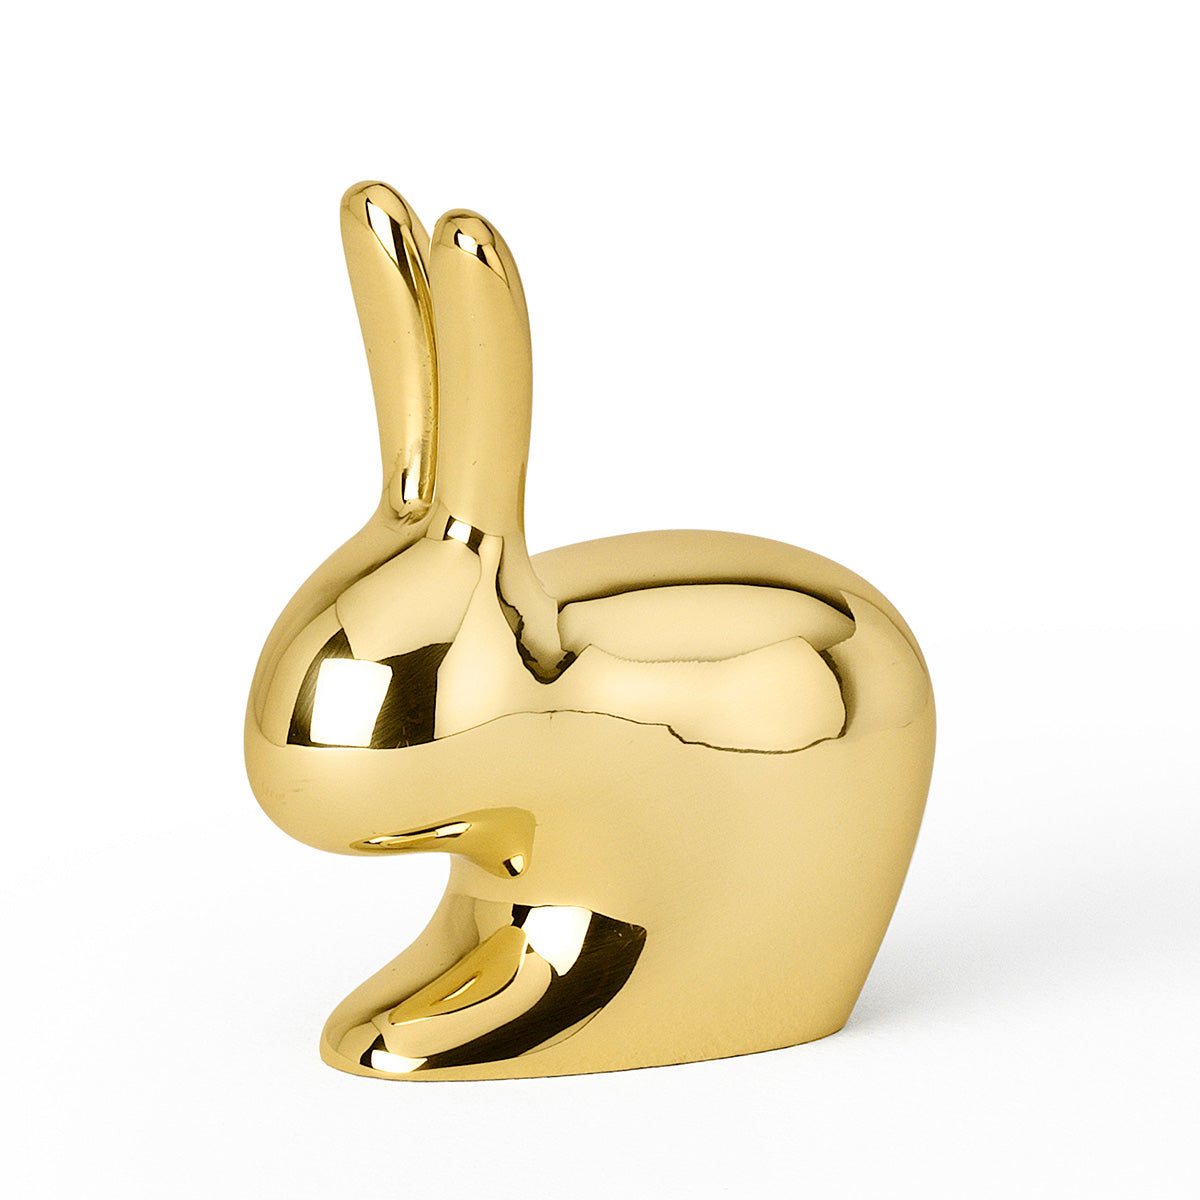 Rabbit Paperweight - Ghidini 1961 - Do Shop